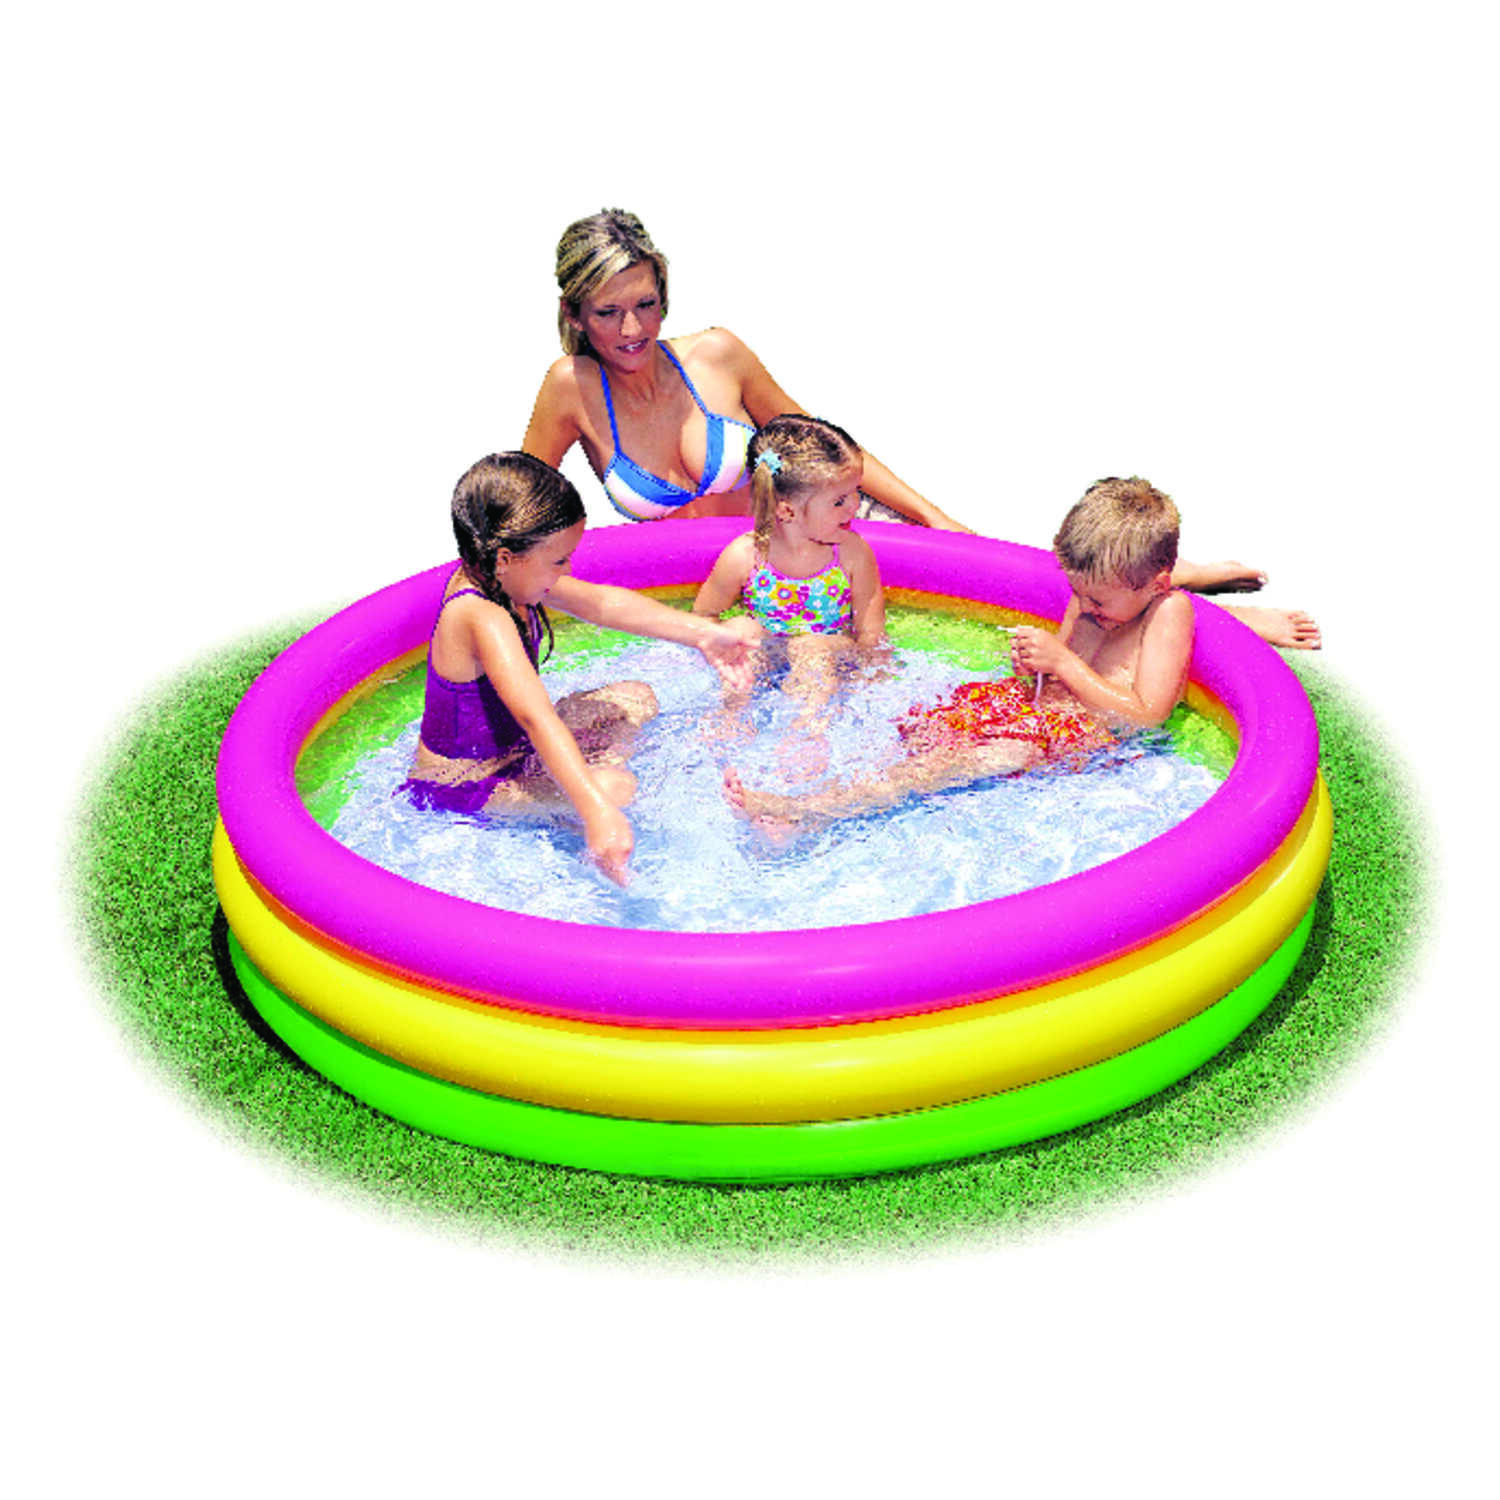 Intex  Sunset Glow  Inflatable Pool  13 in. H x 58 in. Dia.